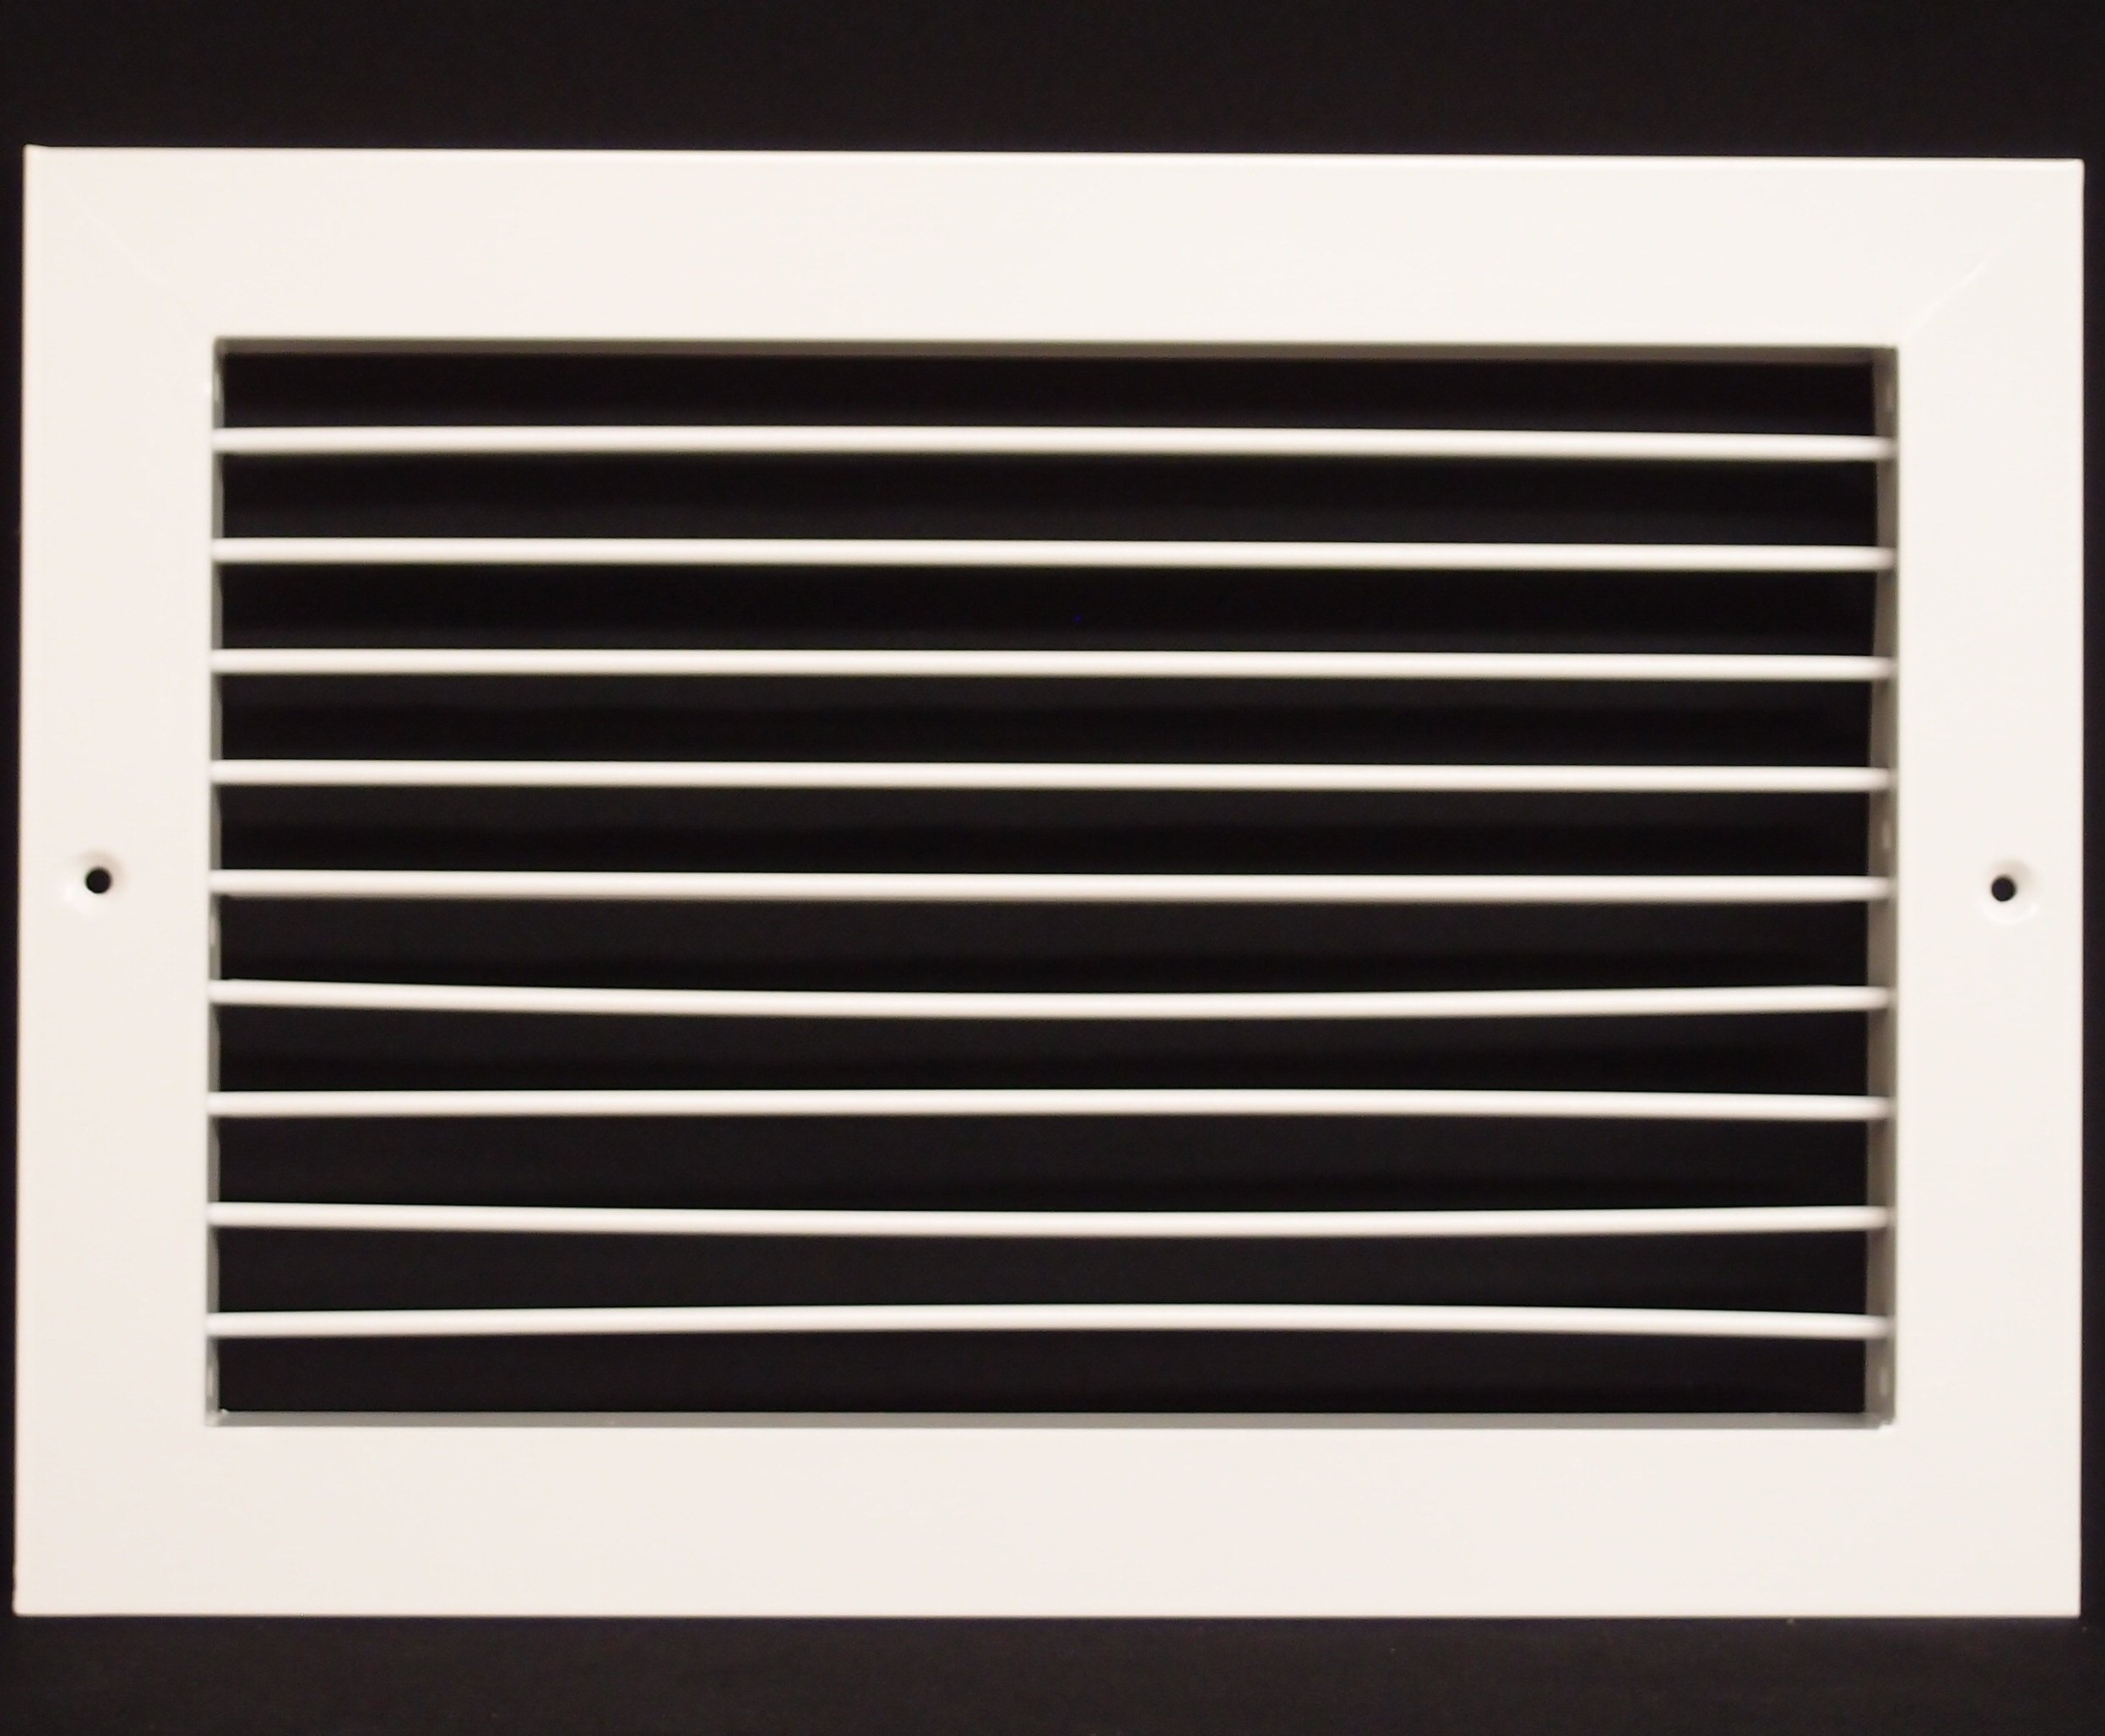 14''w X 10''h Aluminum Adjustable Return/Suuply HVAC Air Grille - Full Control Horizontal Airflow Direction - Vent Duct Cover - Single Deflection [Outer Dimensions: 15.85''w X 11.85''h]